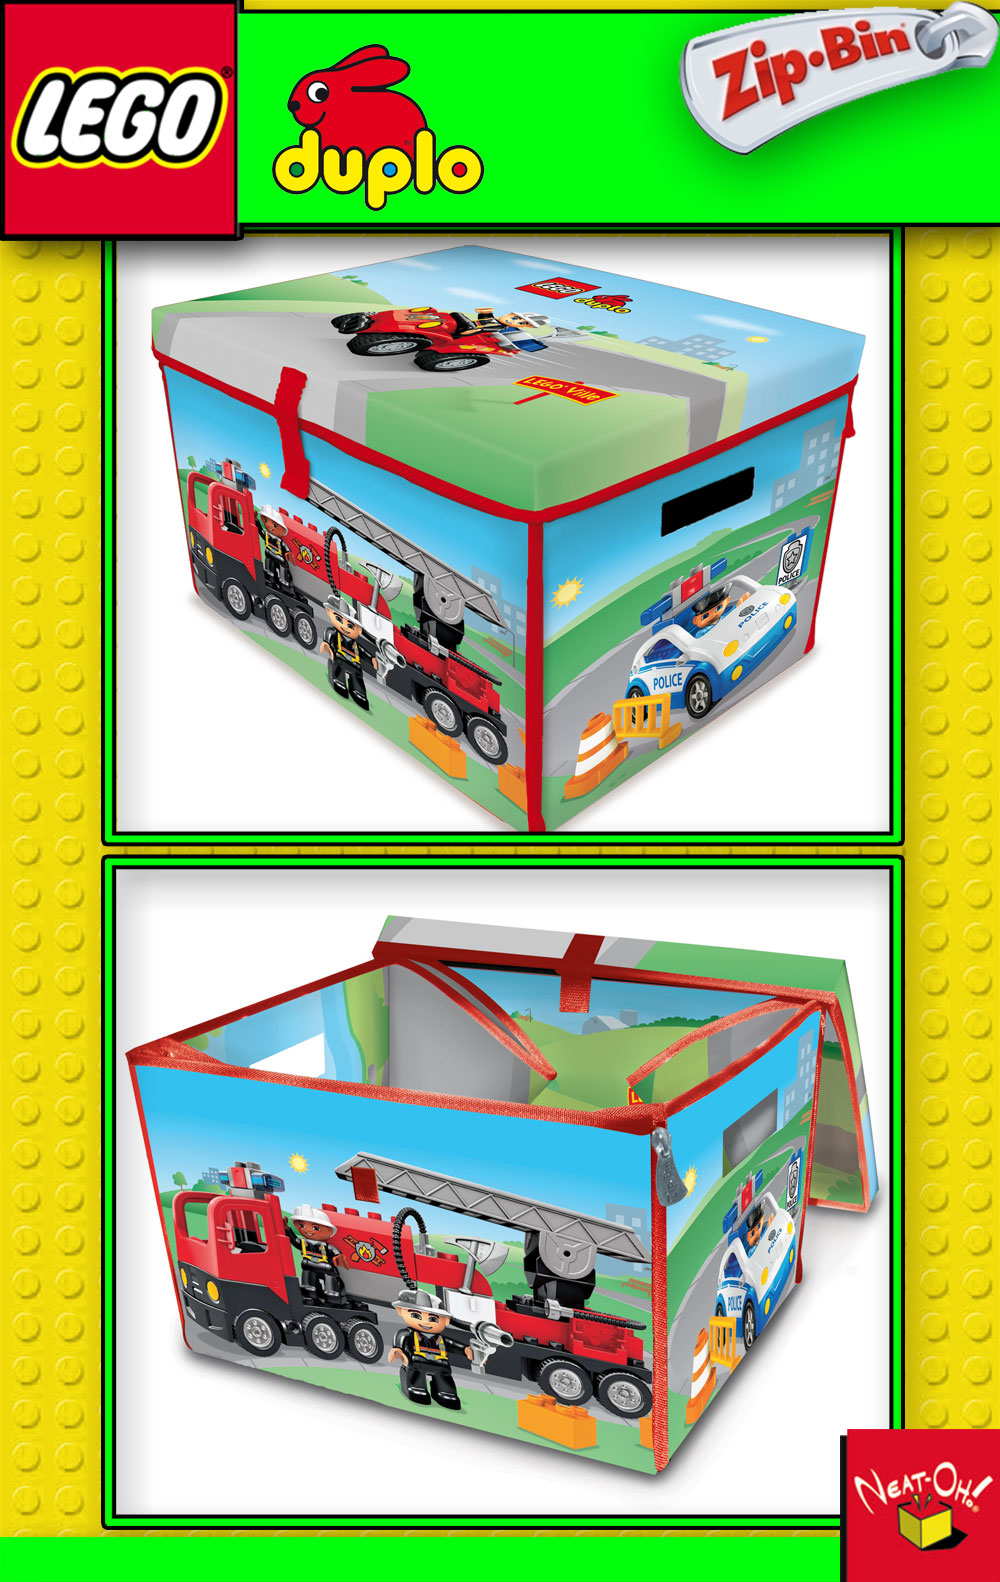 Lego Duplo Playmat Table Storage Case Box Carpet Ebay